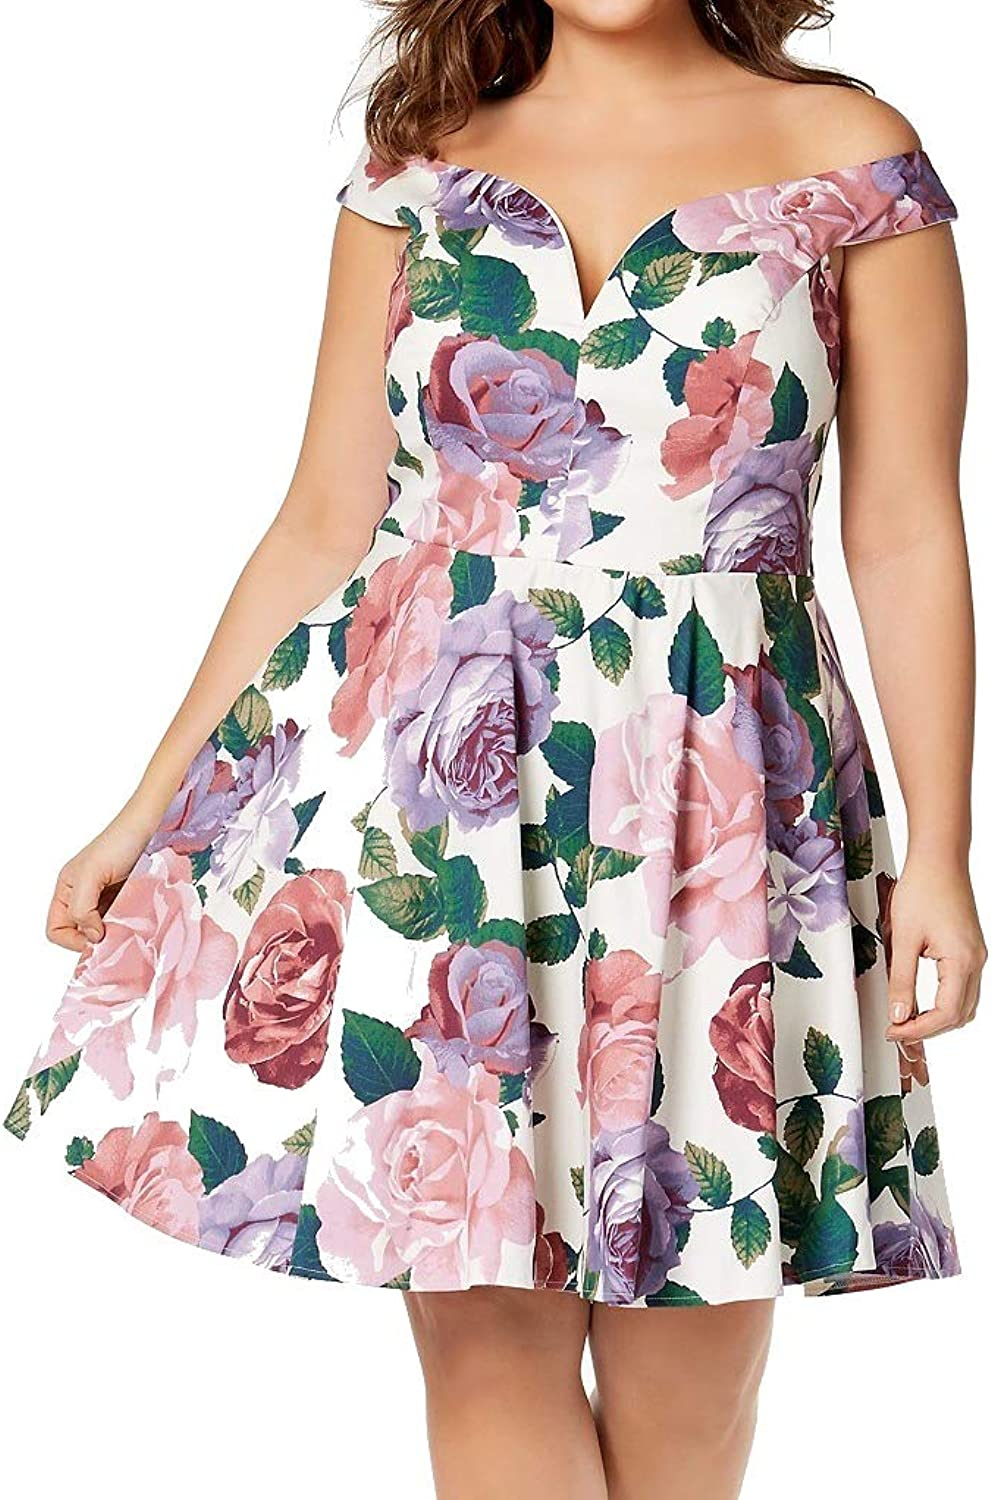 City Studios Trendy Plus Size Printed OffTheShoulder Dress